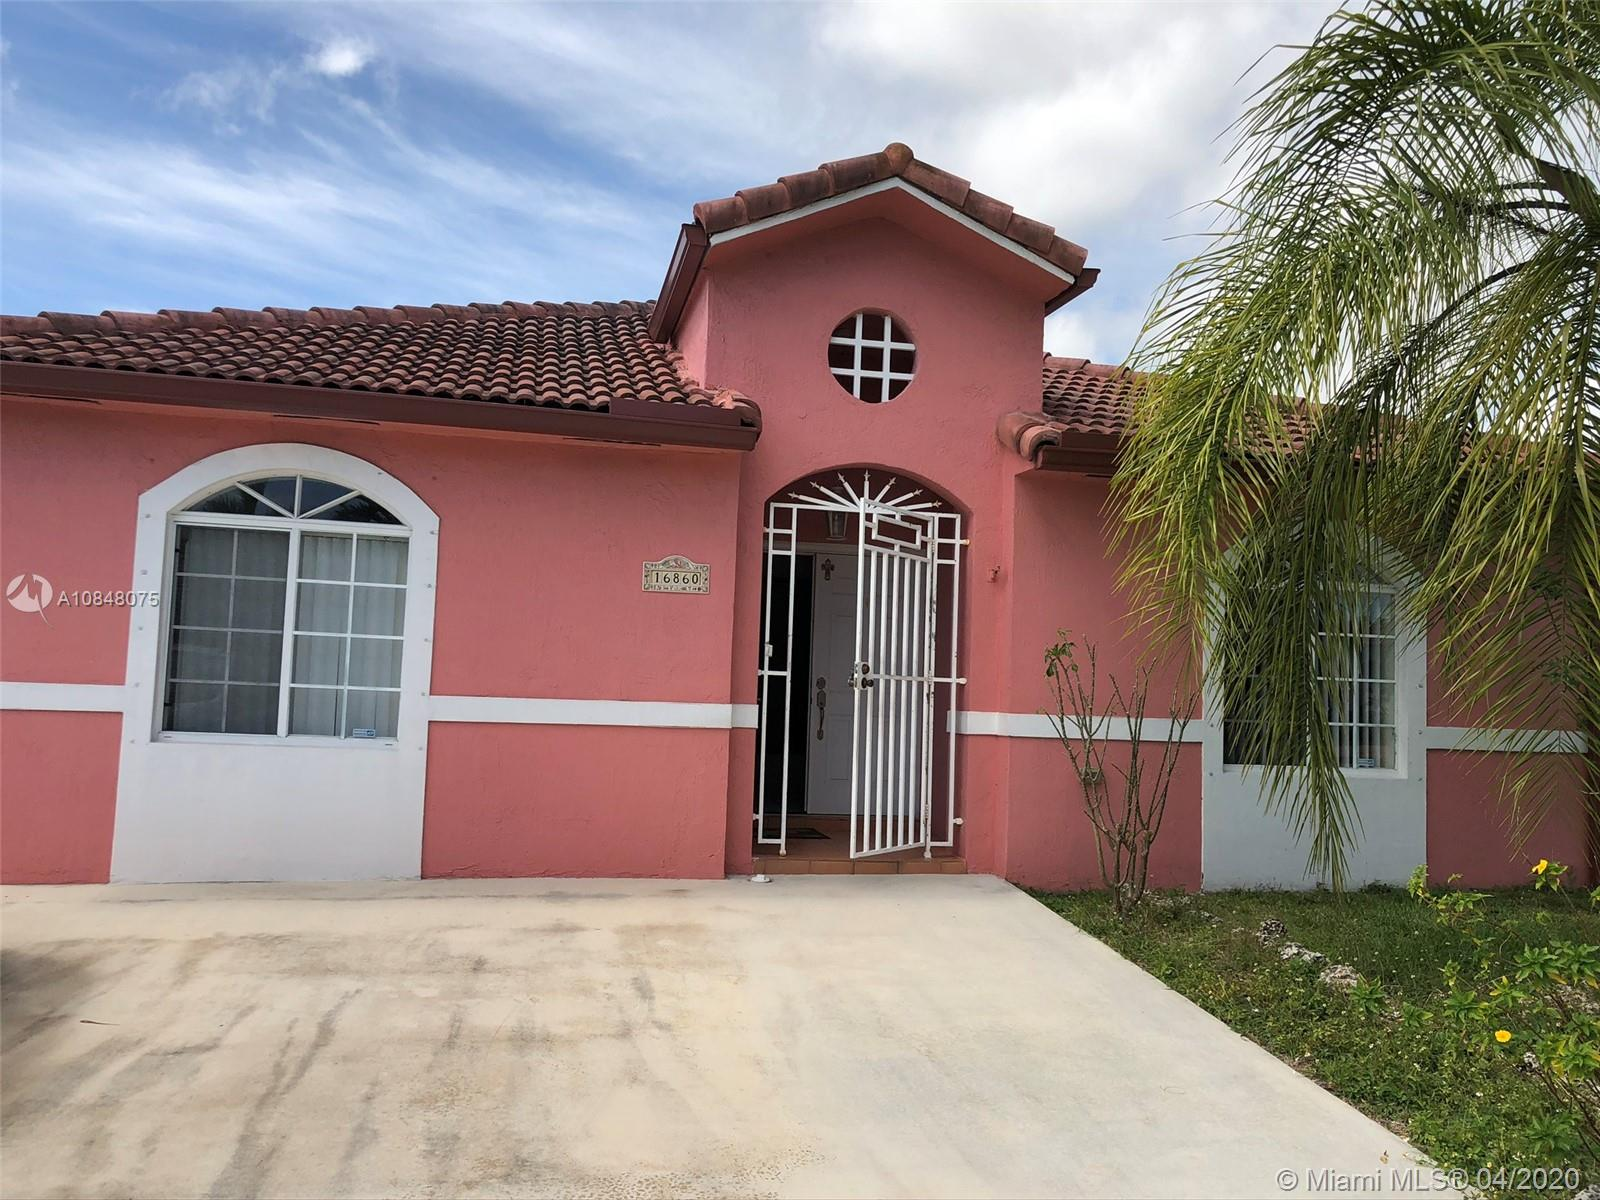 Beautiful Single Family Home with 3 Bedrooms, 2 Bathrooms, and No HOA  in a very desirable neighborhood. This house features a formal living, dining and family room, large master bedroom, with walk-in closet, accordion shutters, beautiful Kitchen with stainless appliances, that overlooks the family room with sliding doors  that open onto the covered terrace in the back yard, tile throughout the house.